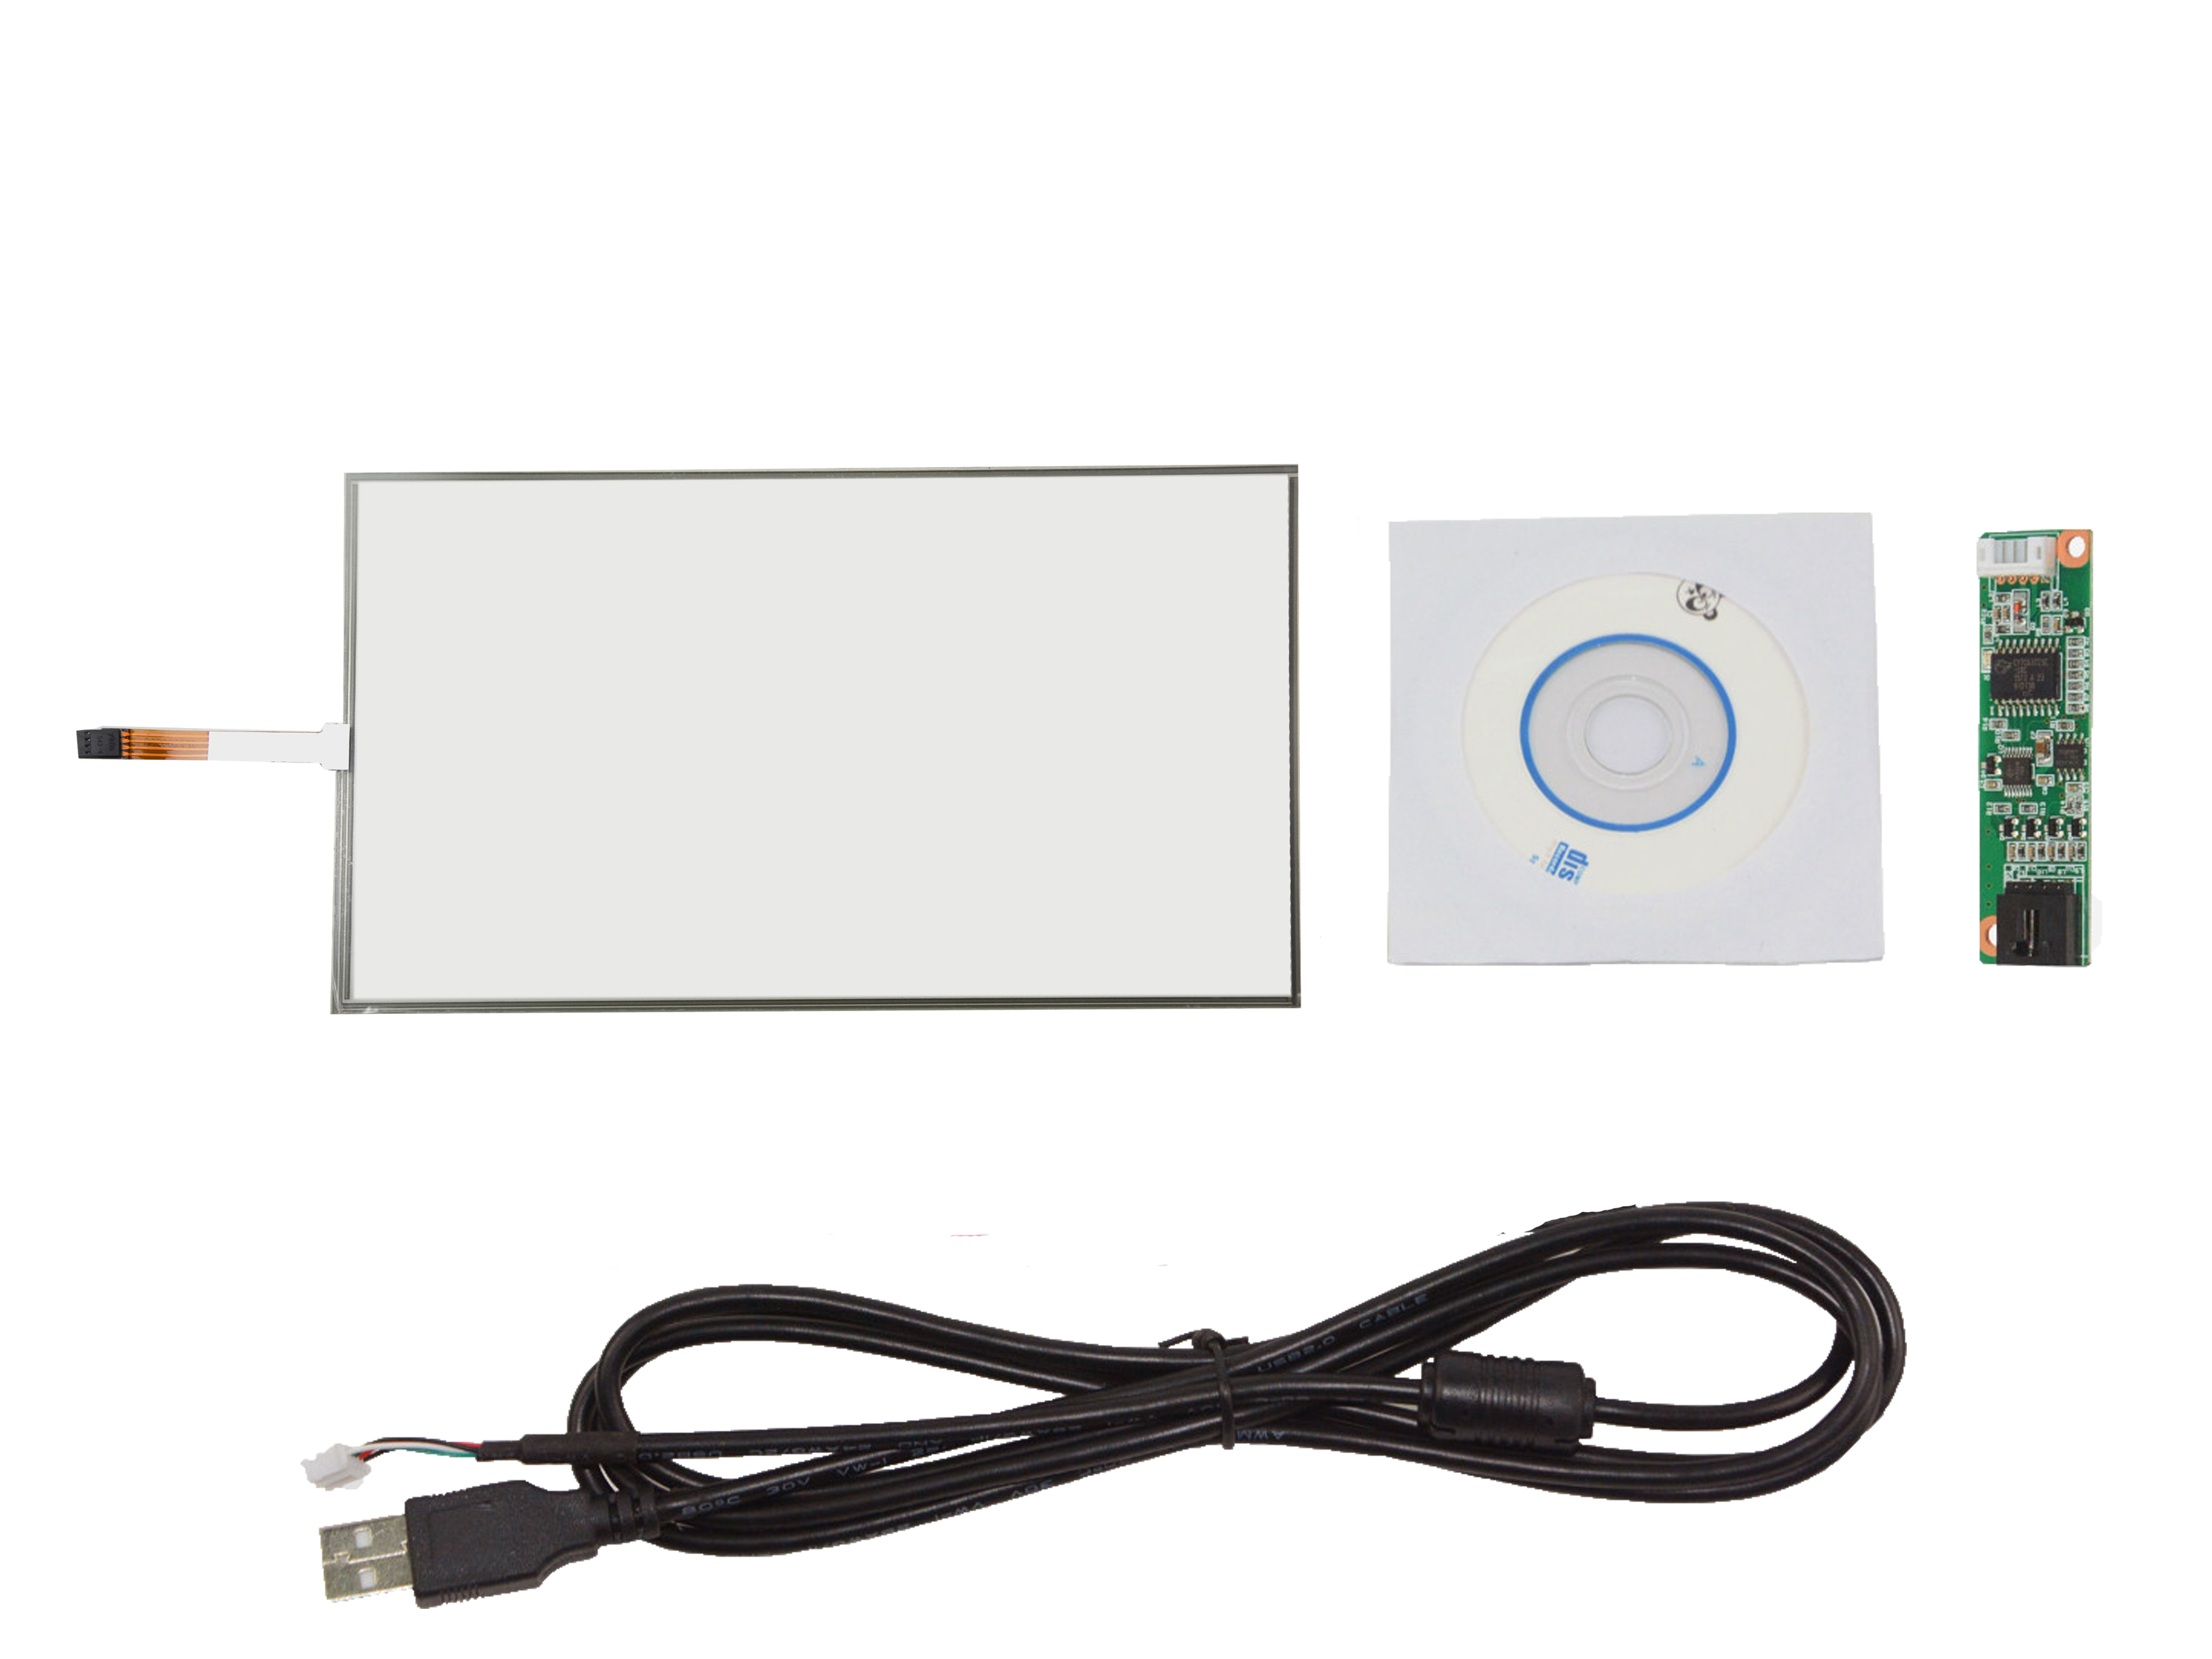 15inch 4 Wire Resistive Touch Panel 16:10 346 x 217mm With USB Controller Card